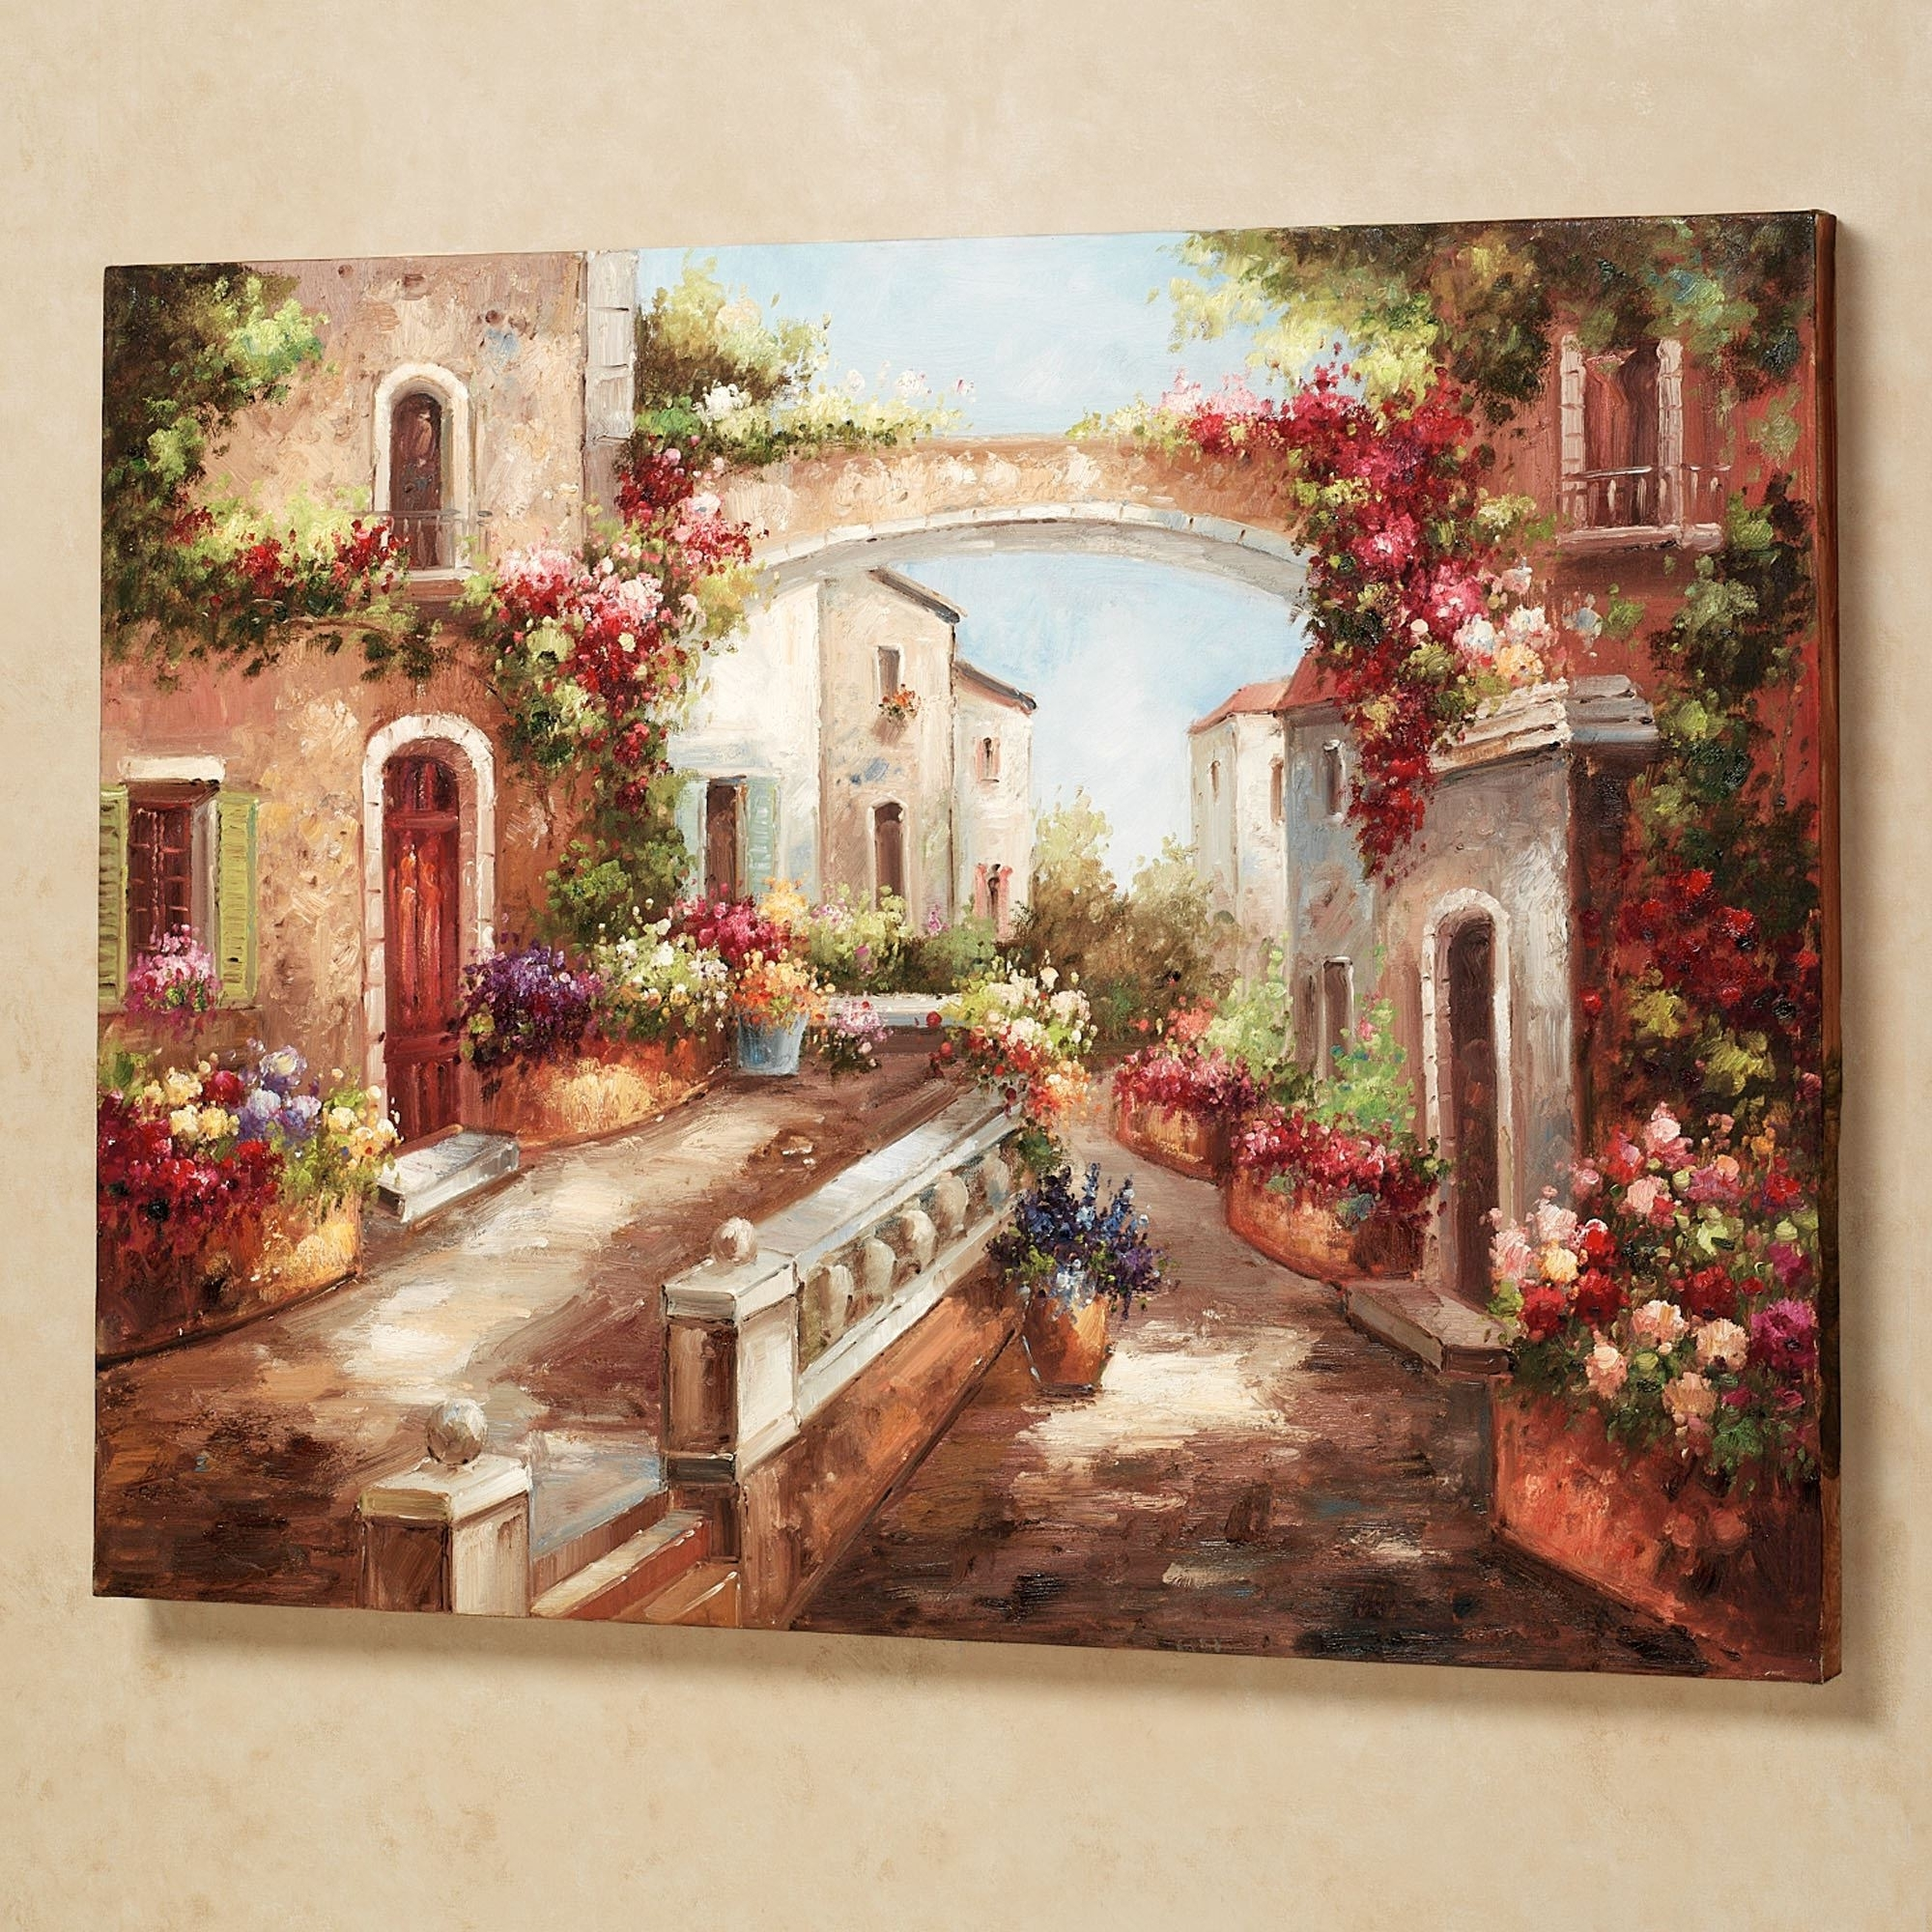 Vintage Italian Wall Art Within Most Current Wall Art Design: Tuscan Wall Art Rectangle Architecture Buildings (Gallery 4 of 15)